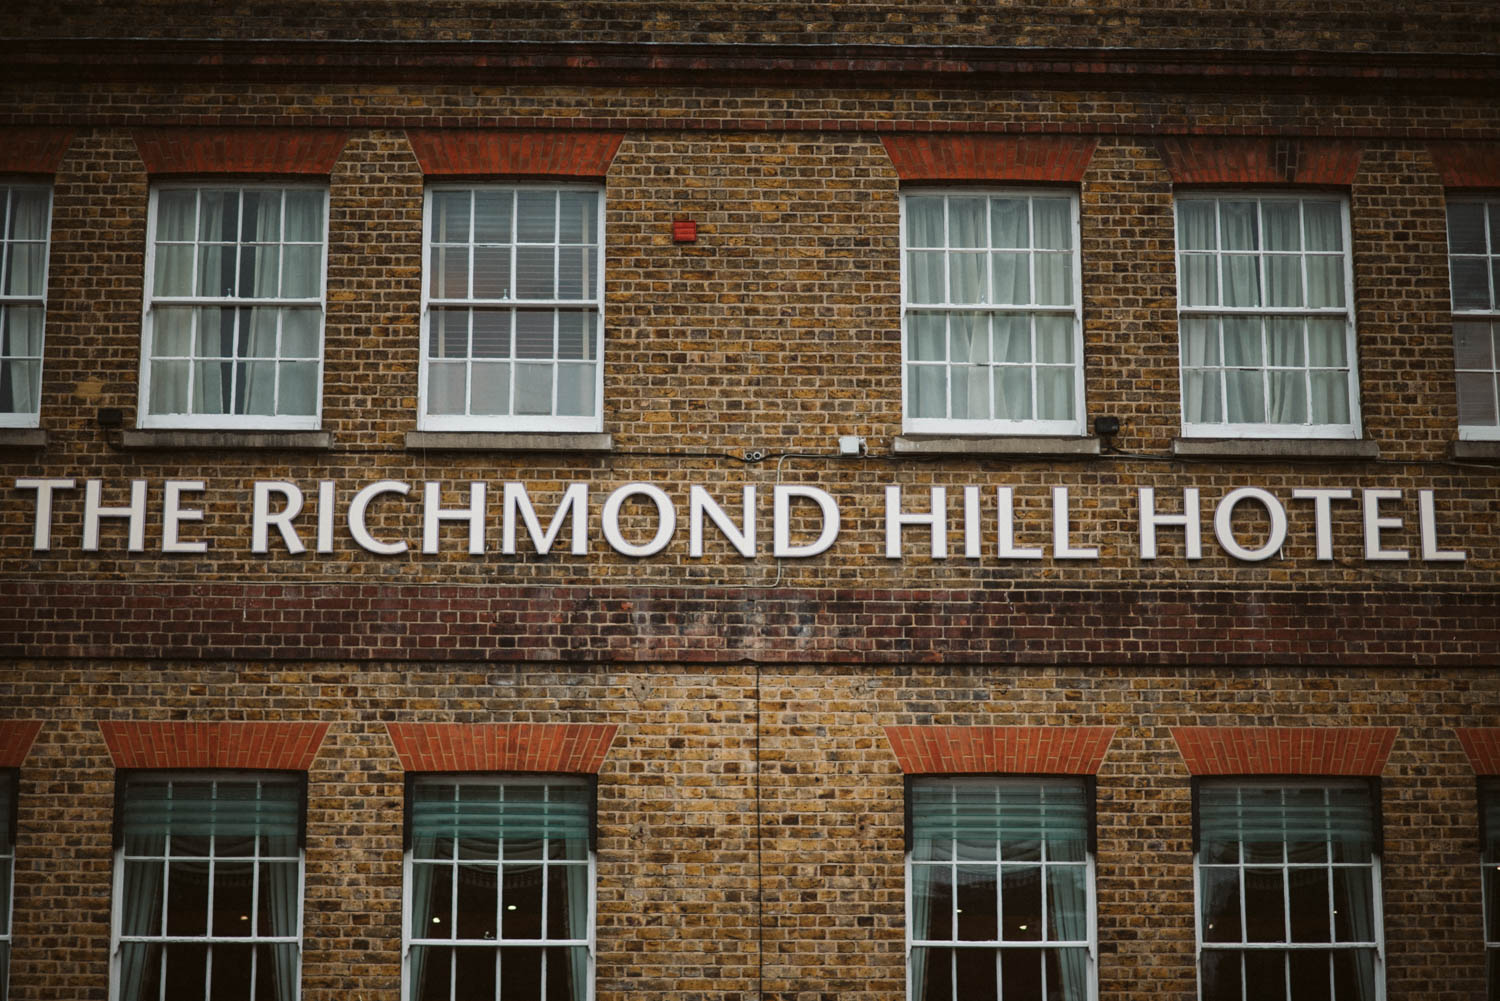 the front of the Richmond hill hotel